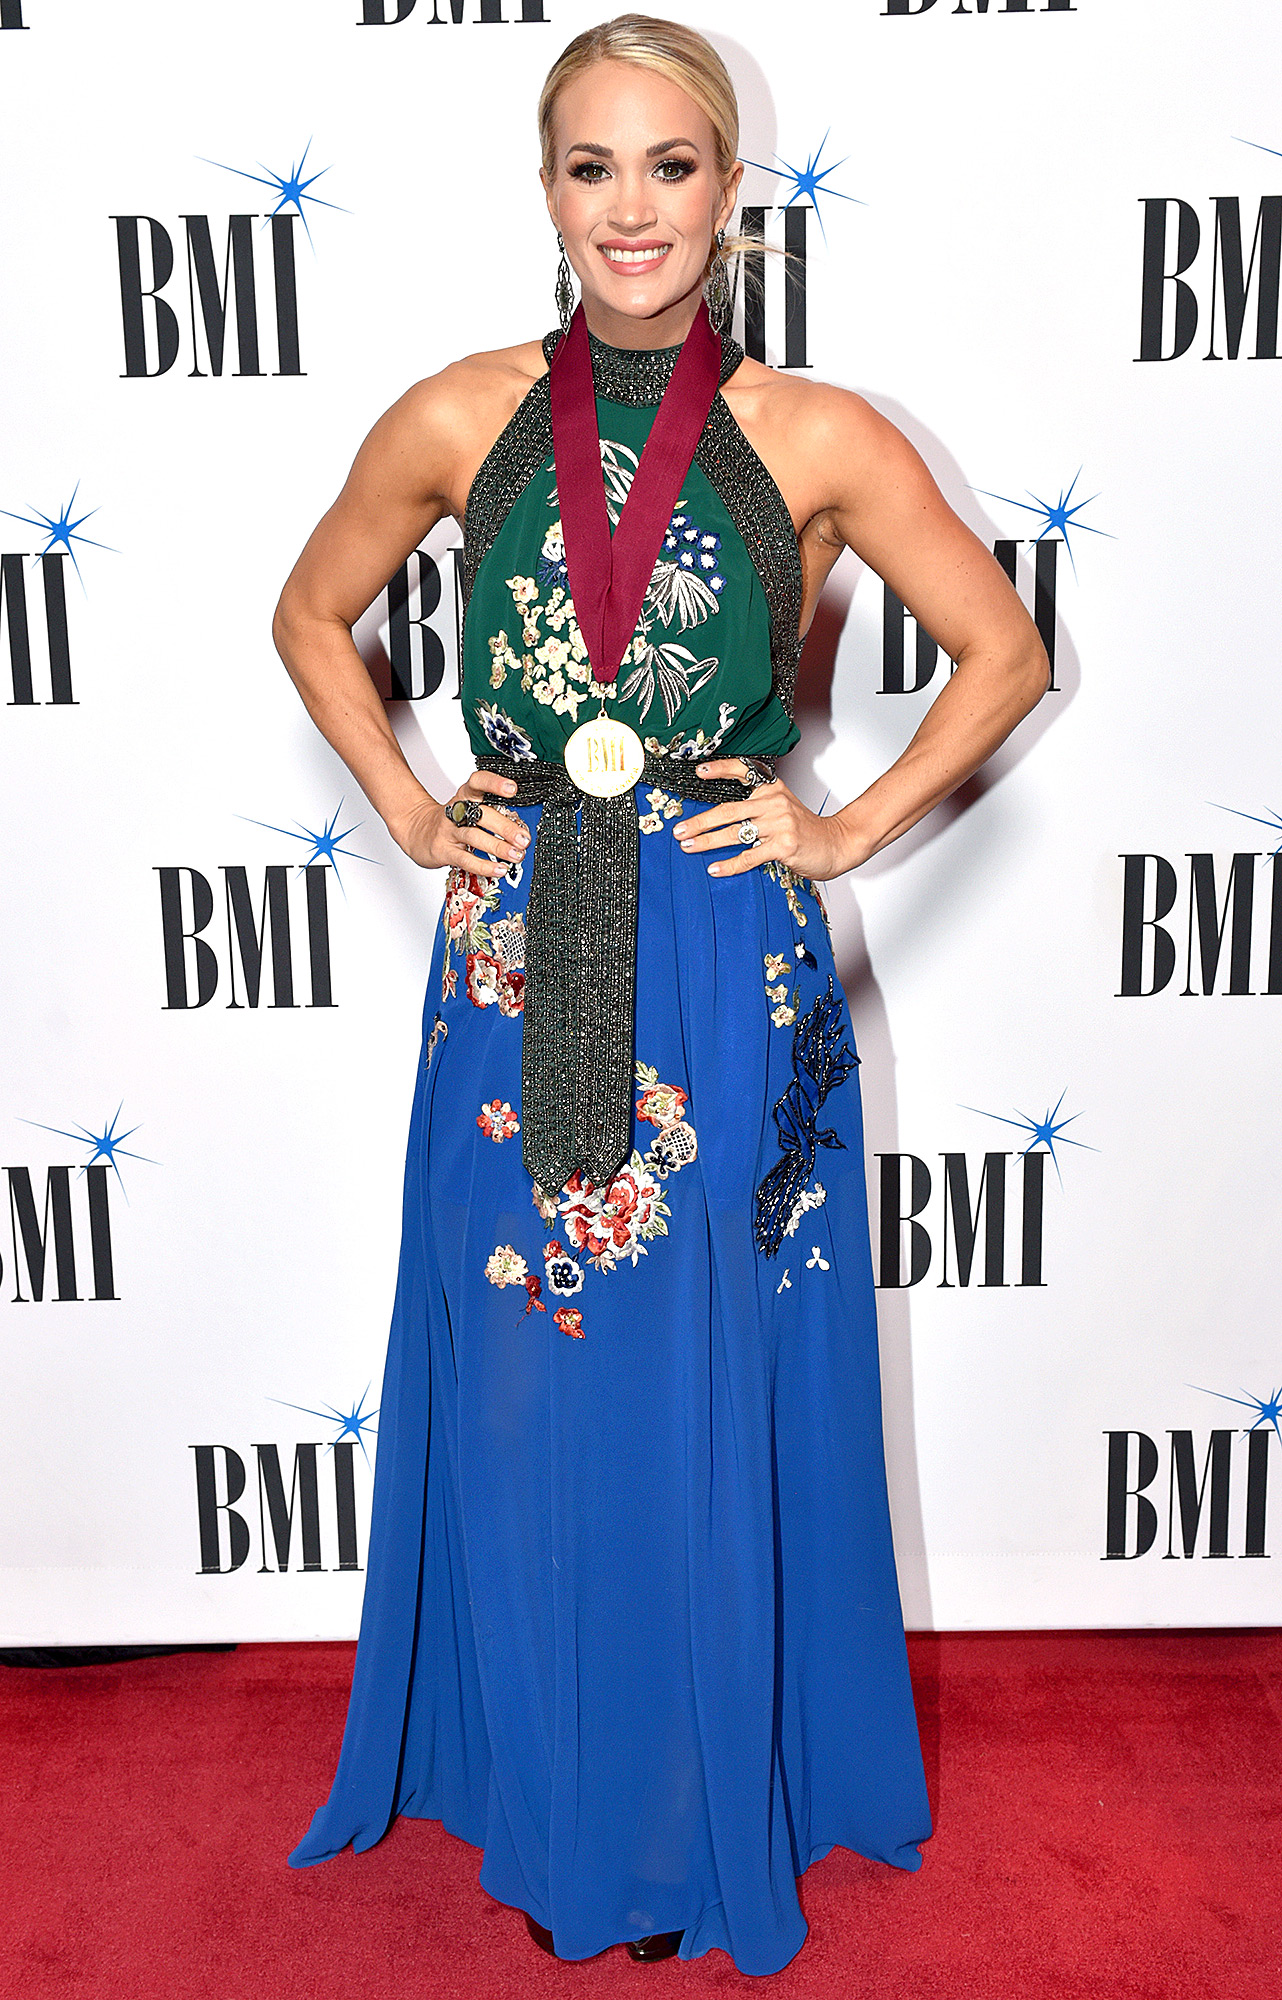 Carrie Underwood attends as BMI presents Dwight Yoakam with President's Award